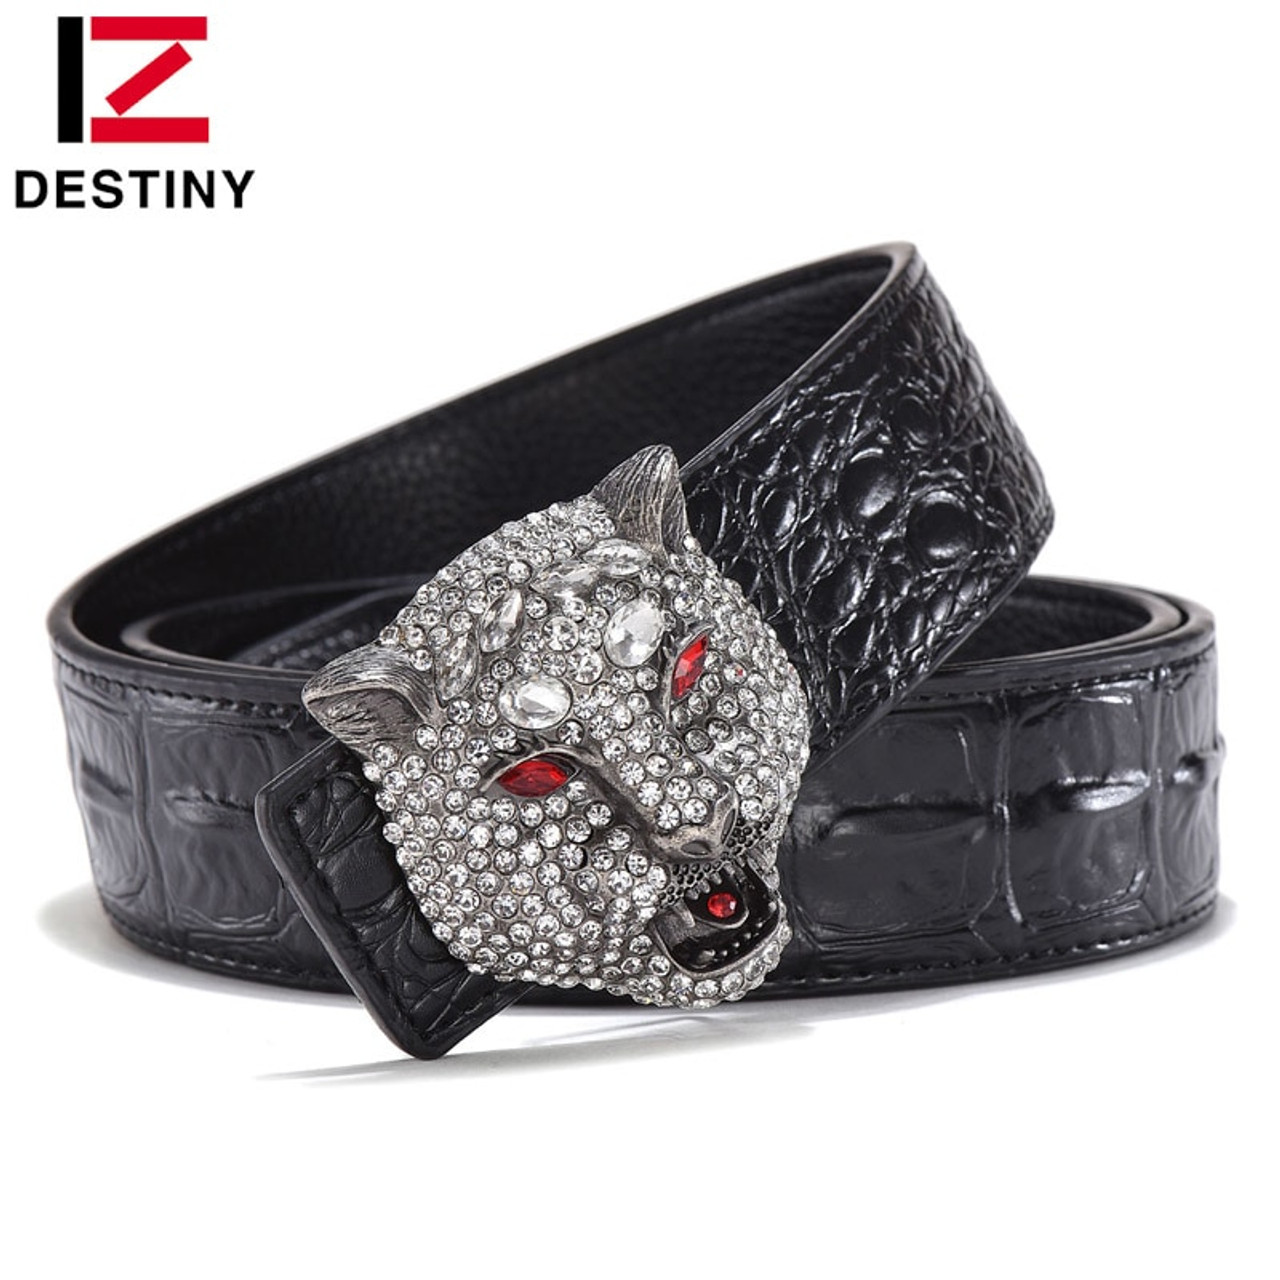 Mens Luxury Business Eagle Automatic Buckle Strap Dress Leather Waistband Belt T